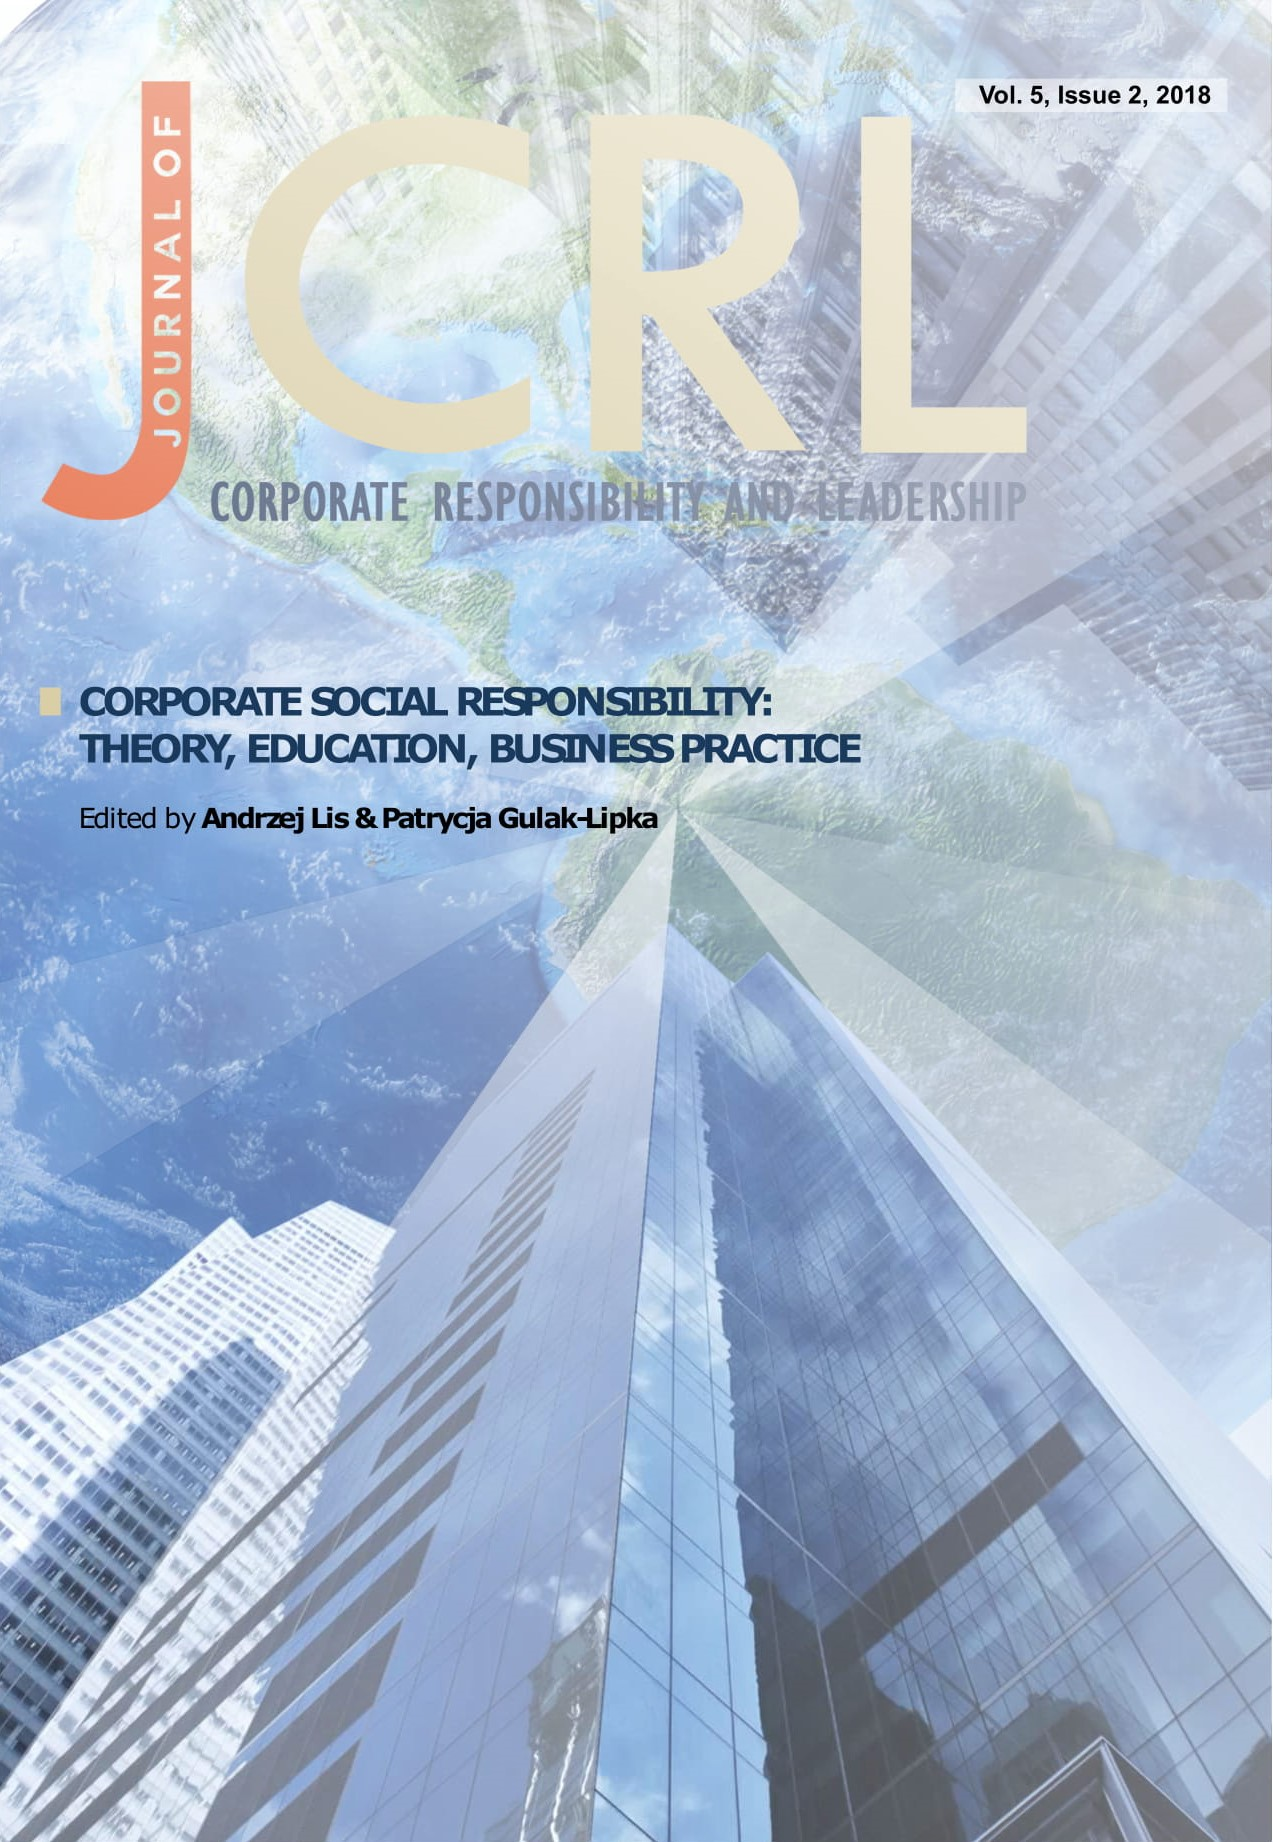 View Vol. 5 No. 2 (2018): Corporate Social Responsibility: Theory, Education, Business Practice